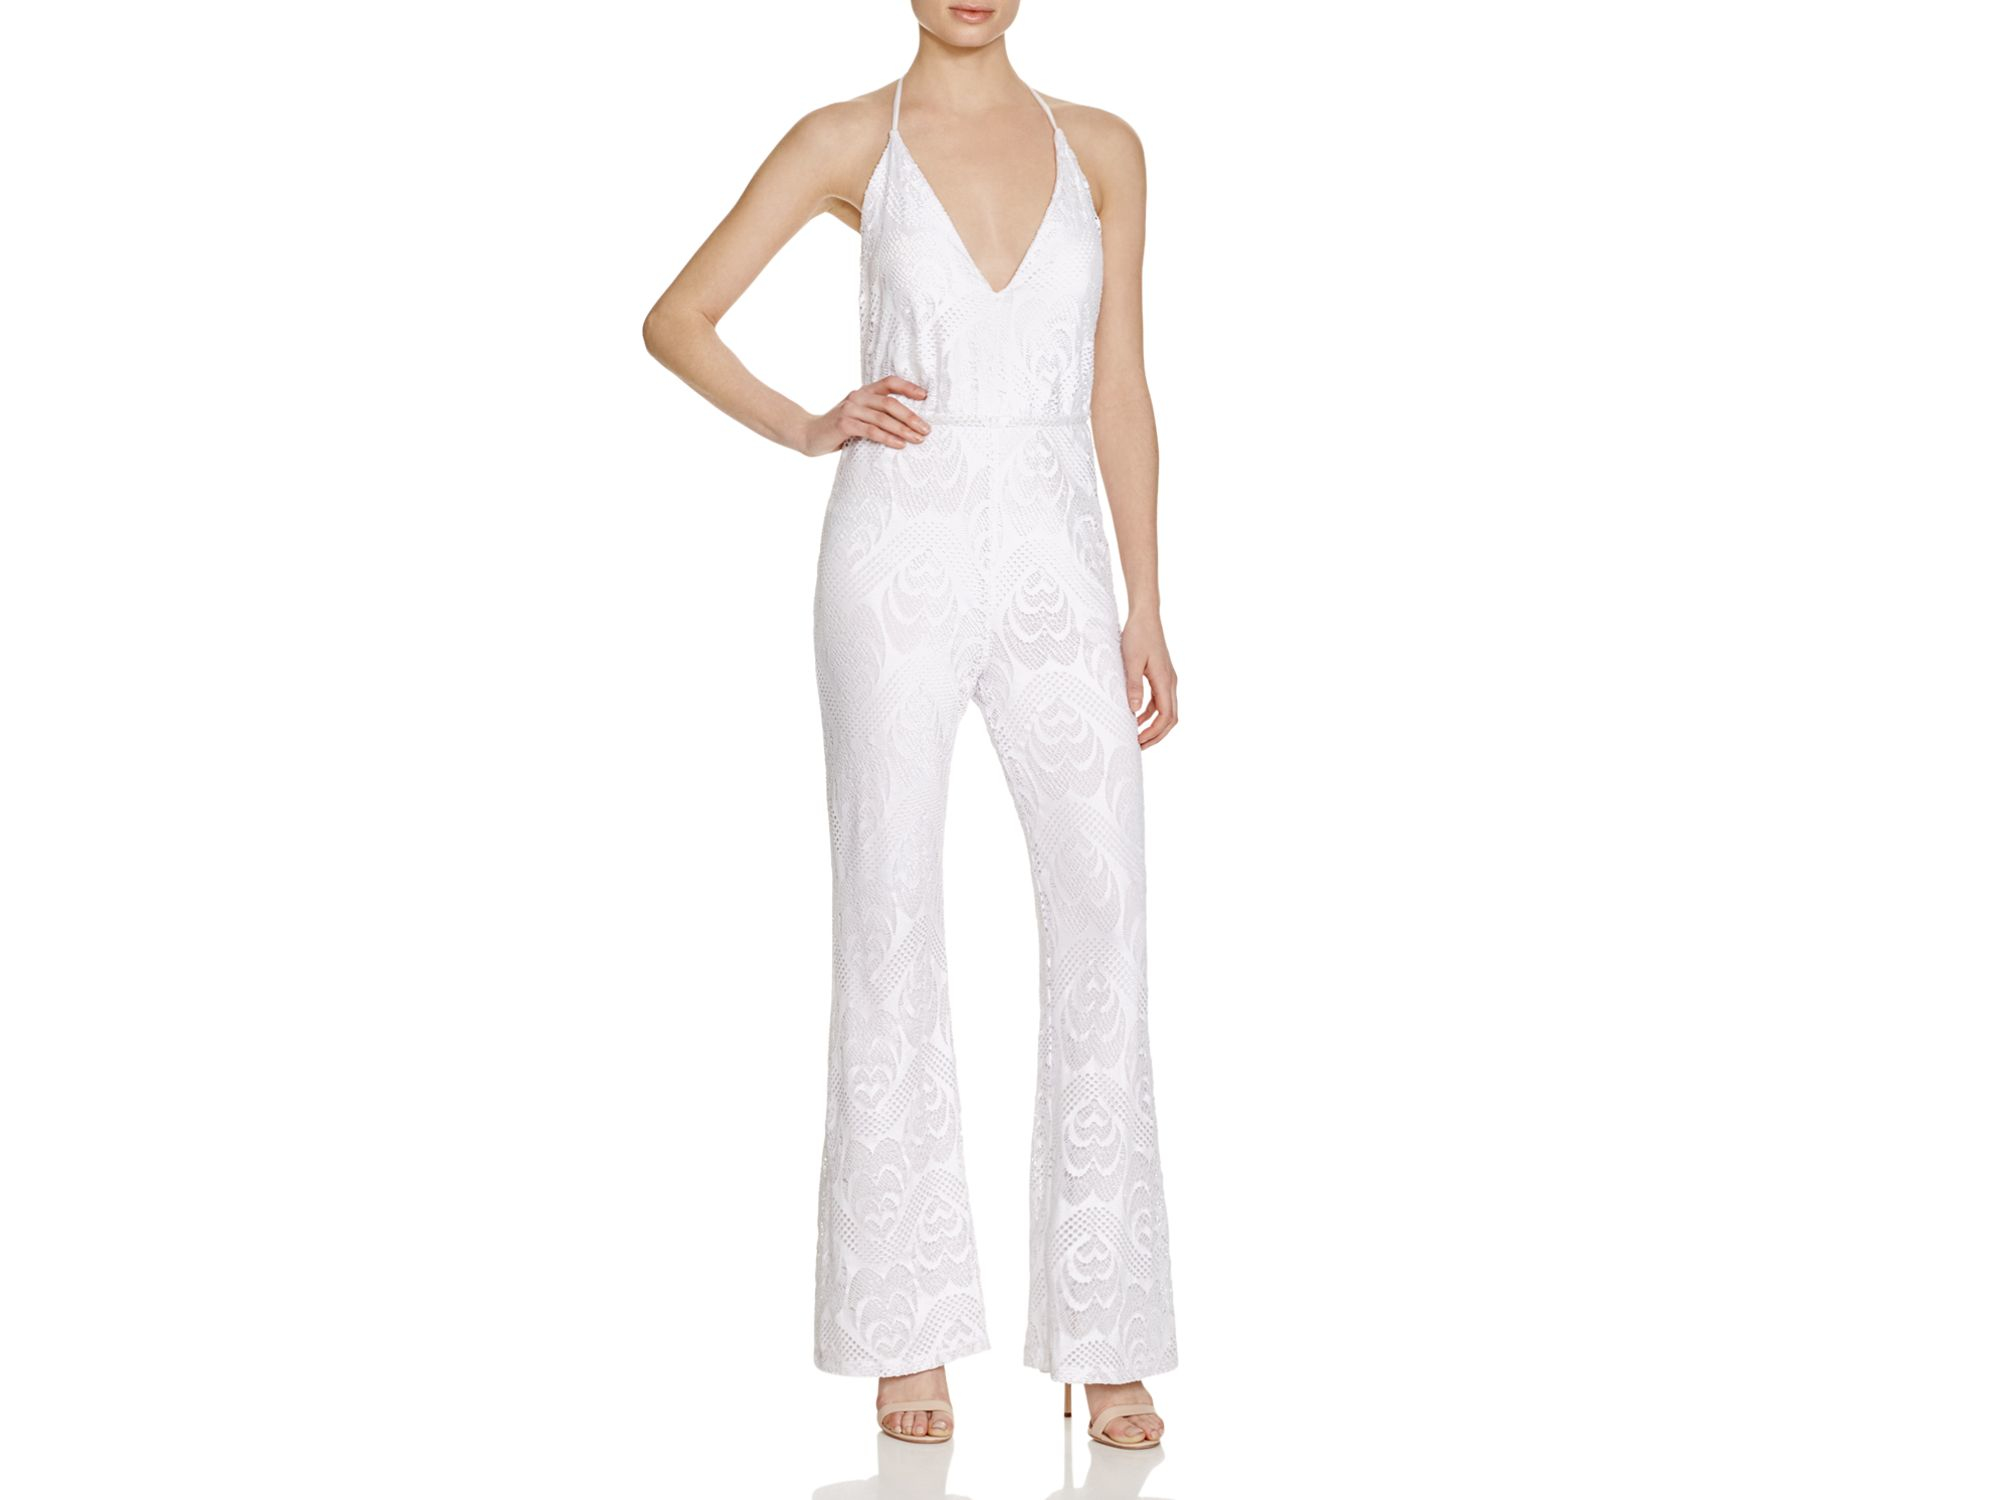 f423e37ad2cd Lyst - Guess Sara Flare Jumpsuit in White